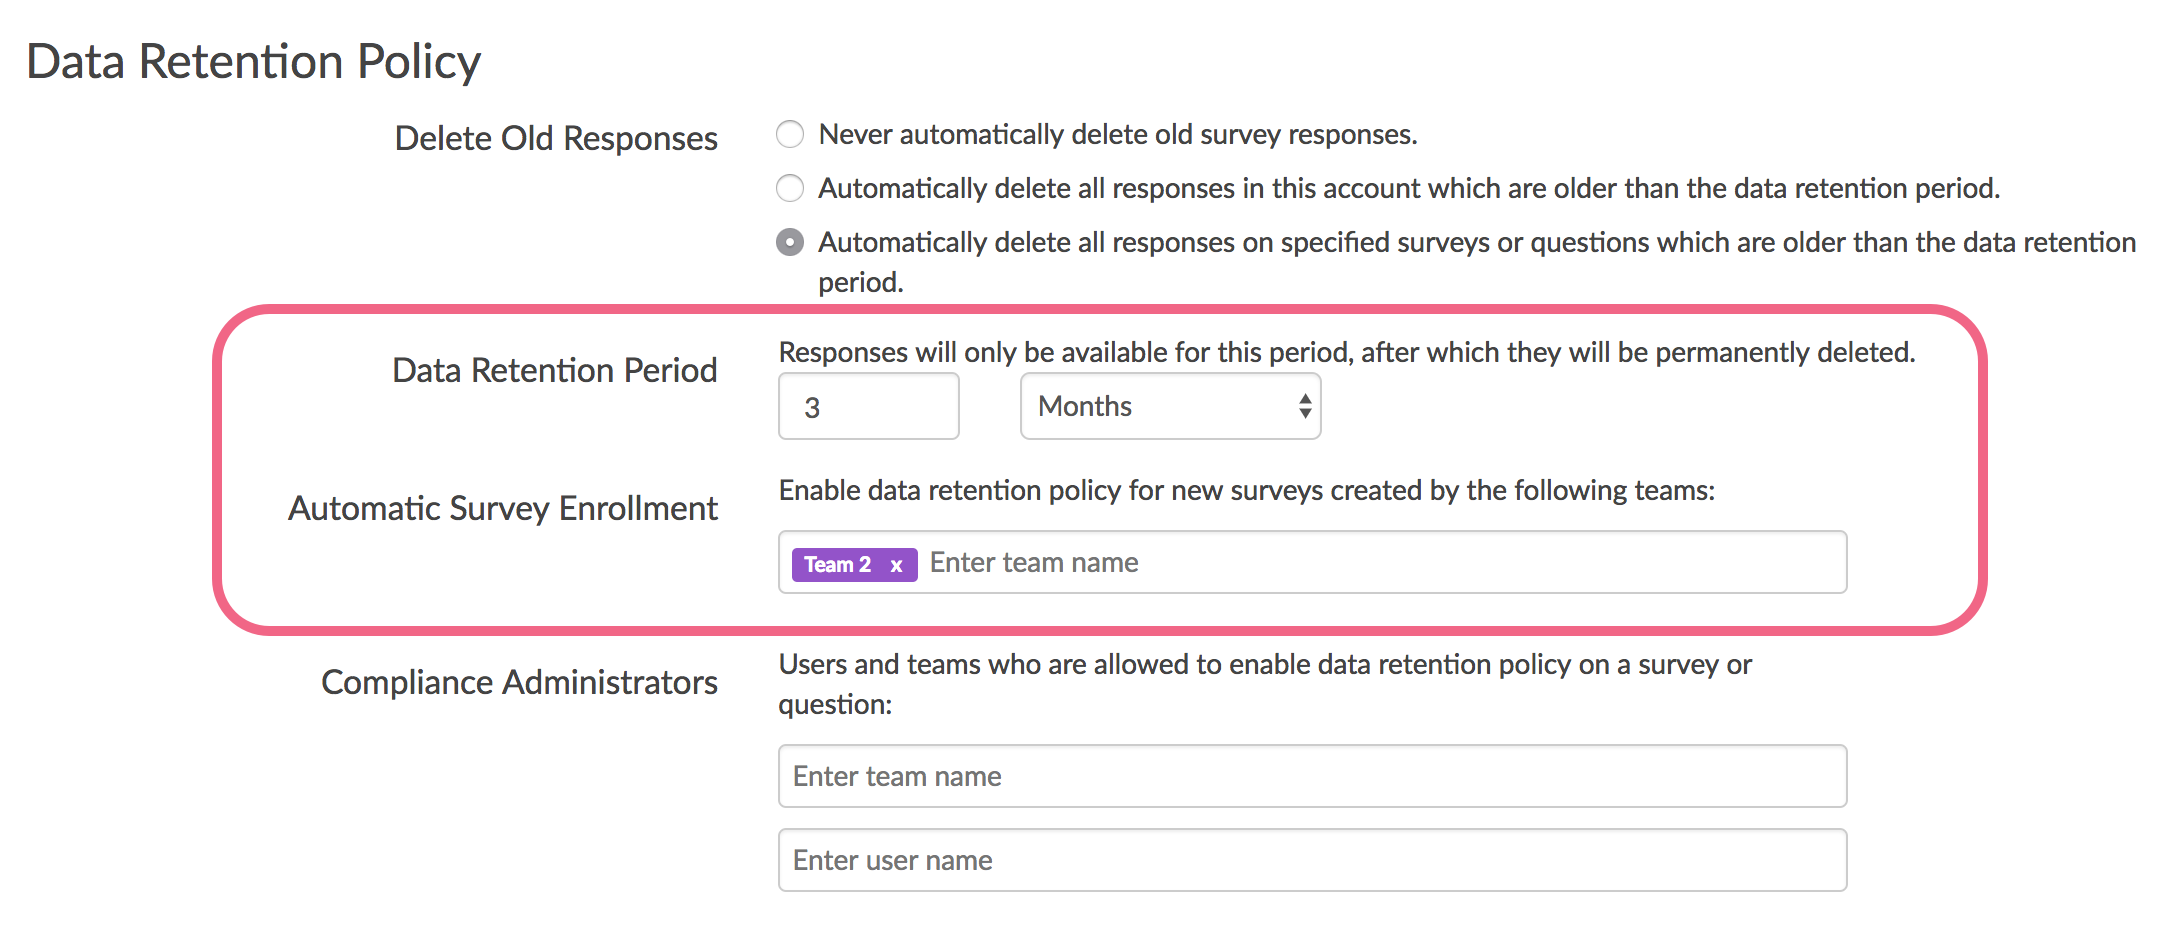 DRP Setting: Automatically delete responses on specified surveys